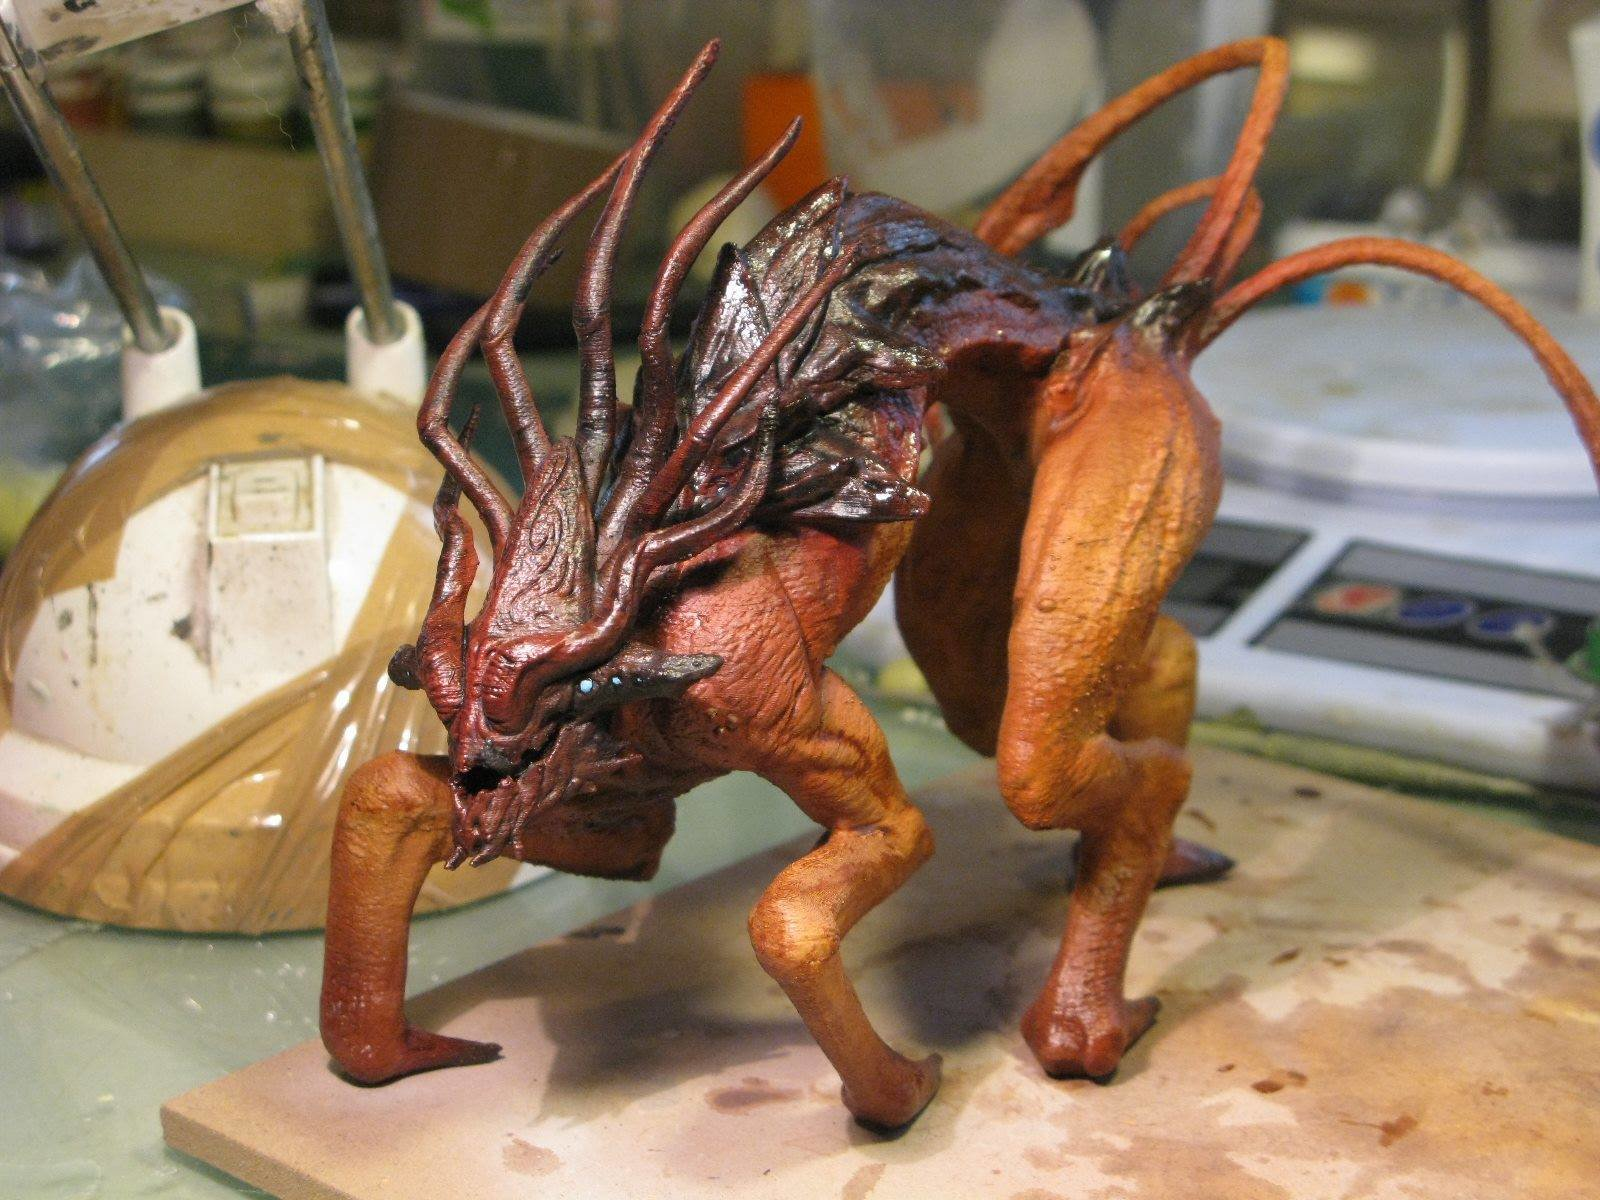 3D printed version Painted by Yohsuke Kawabuko